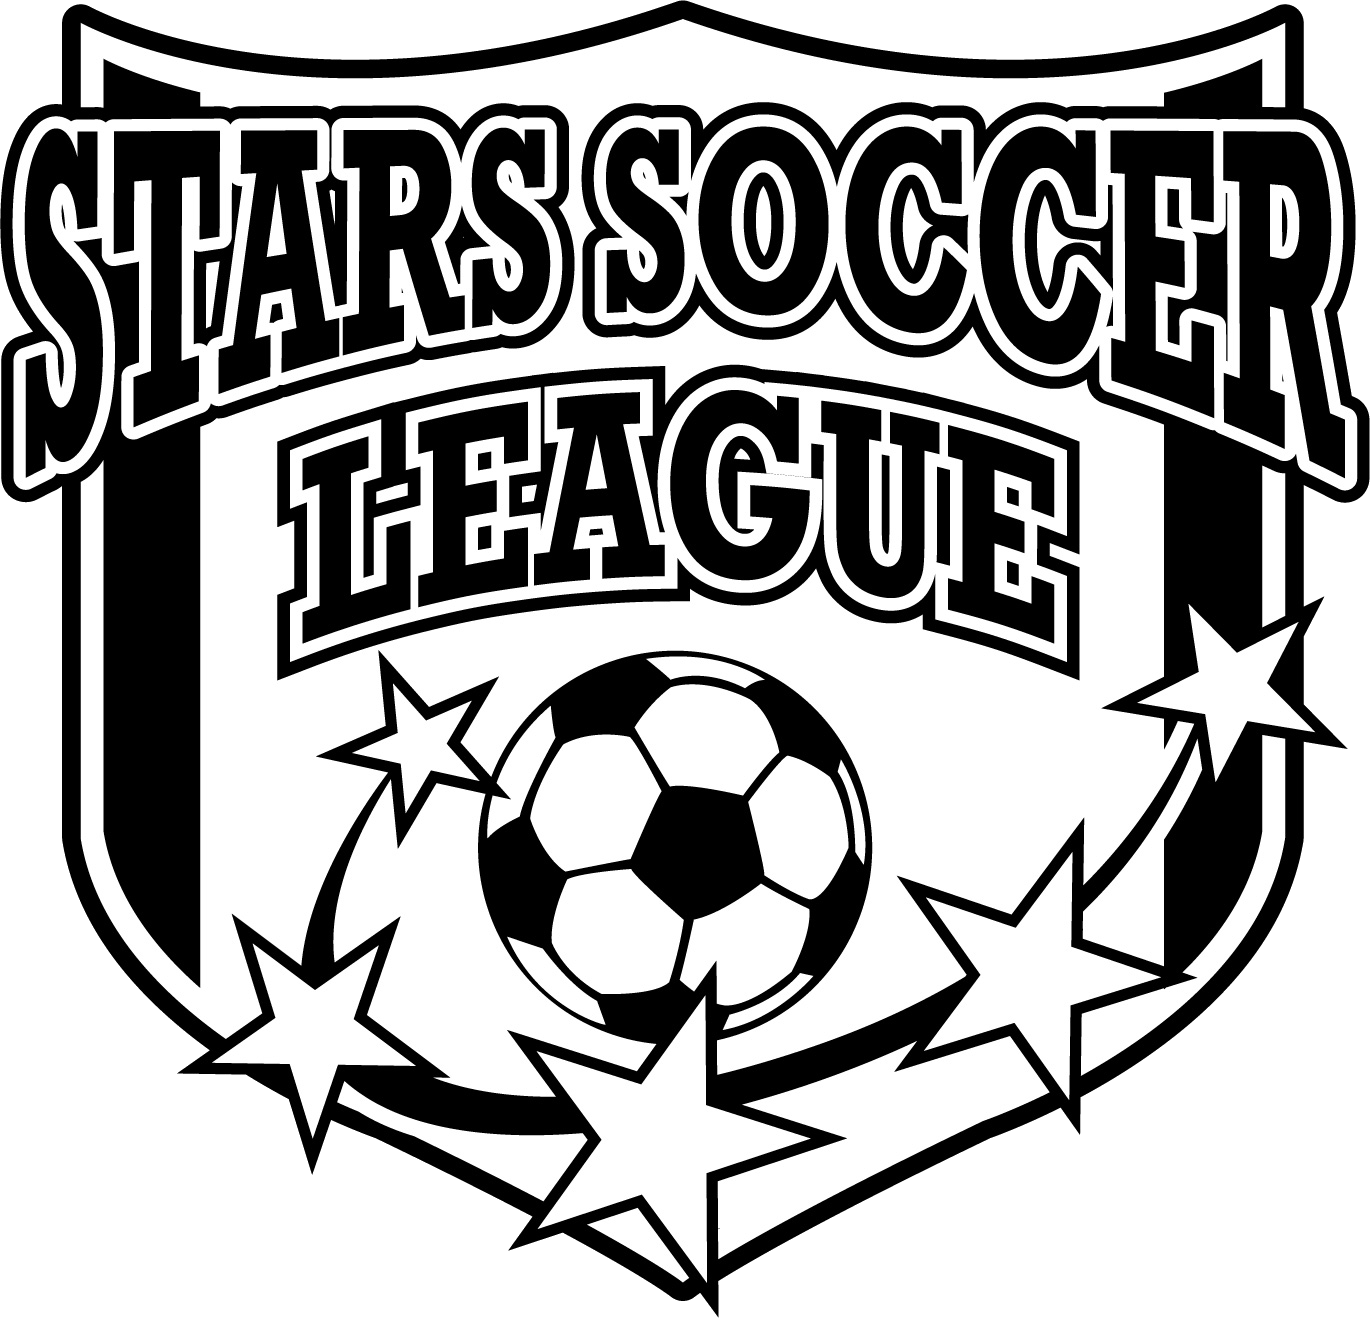 Stars Soccer League